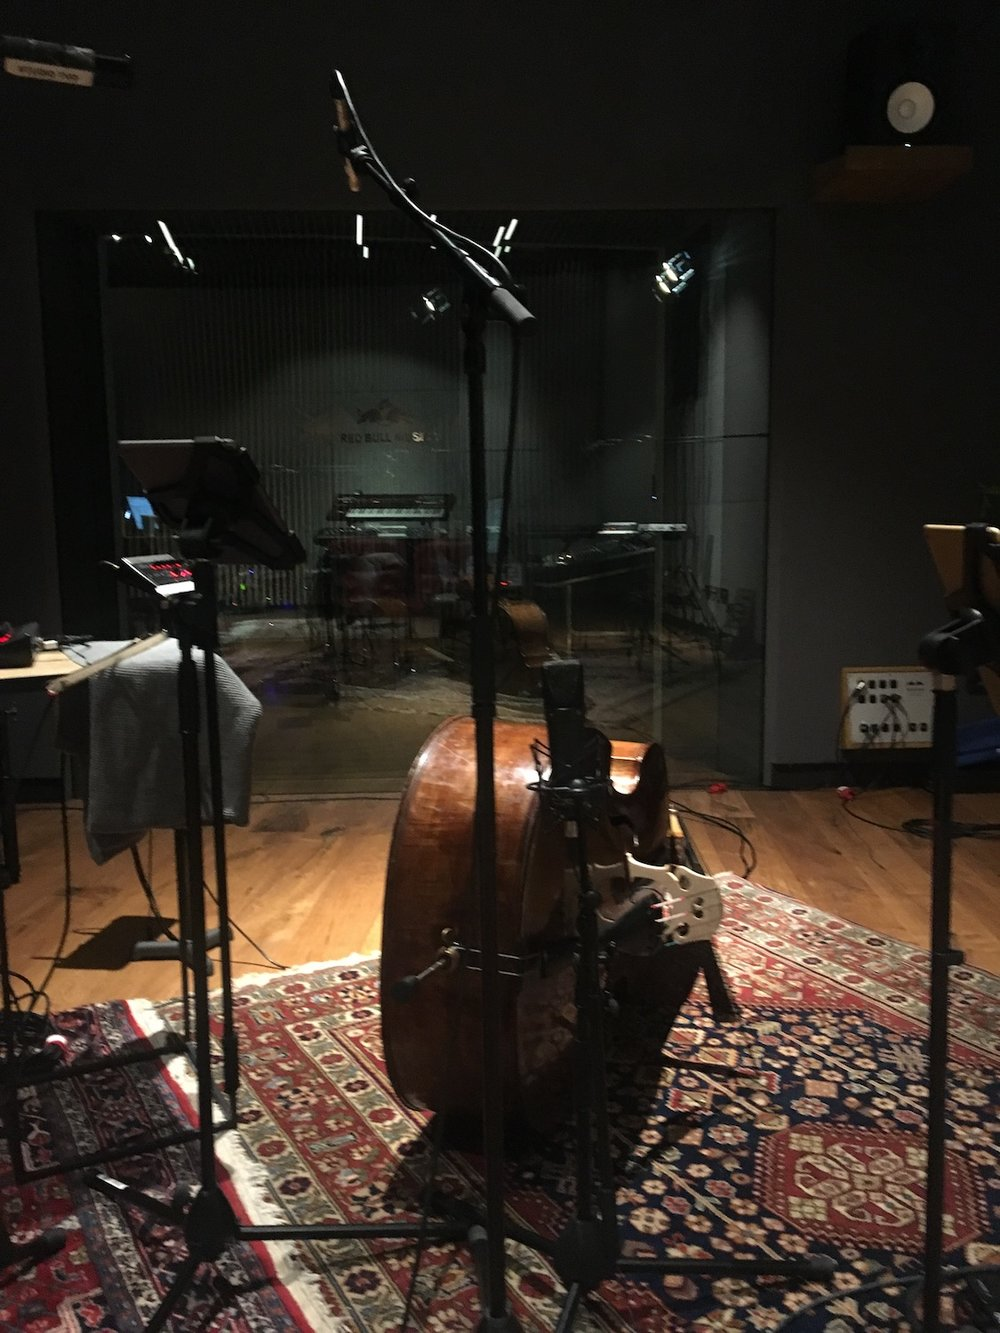 Yung-Nnelg-Red-Bull-Studios-uncut-music-video-double-bass-U87-C451-microphone-The-Wong-Janice.jpg